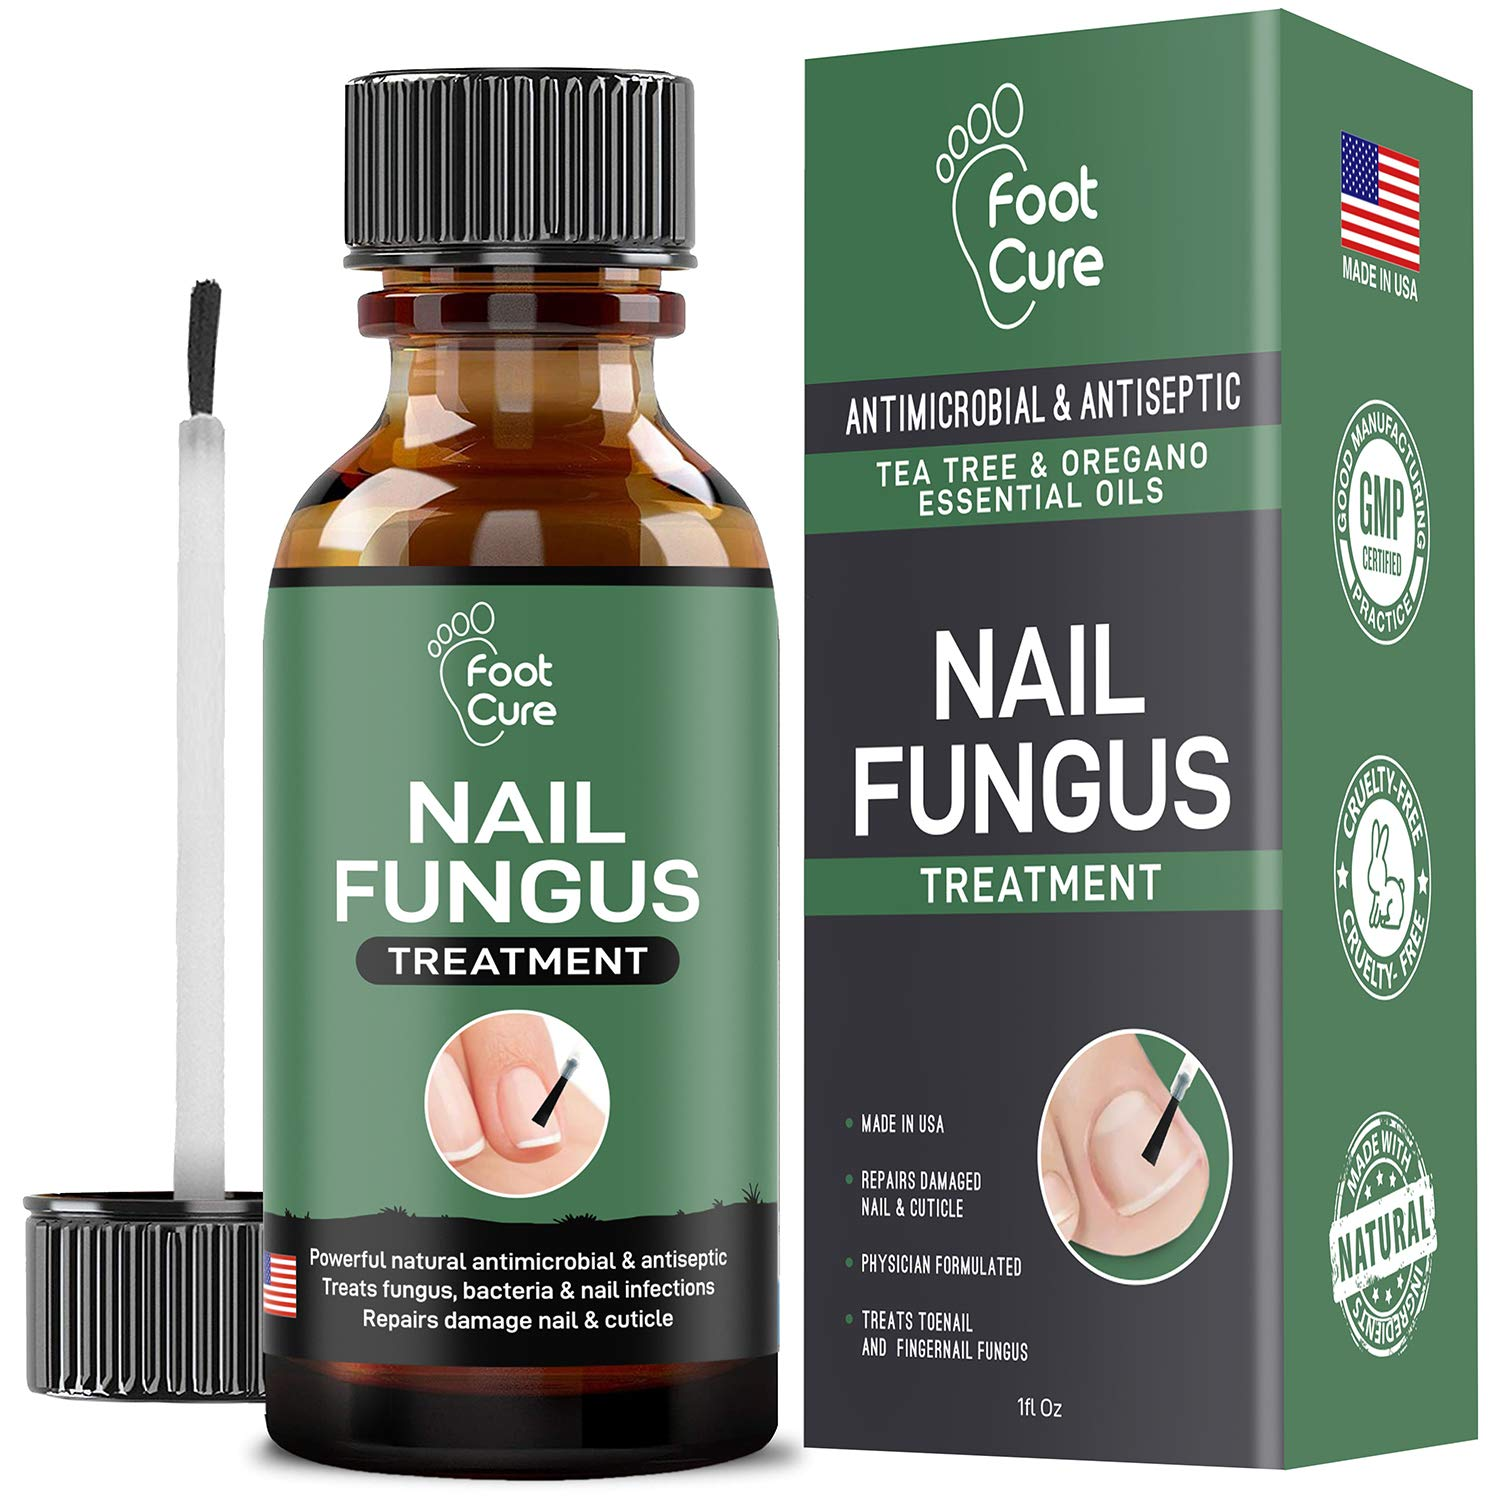 EXTRA STRONG Finger & Toenail Fungus Treatment| Organic & USA Made Nail Fungus Treat-ment| Cure Athlete's Foot & Infected Nails with Our Fungus Treatment| Best Antiseptic Toe Nail Fungus Treatment by FOOT CURE